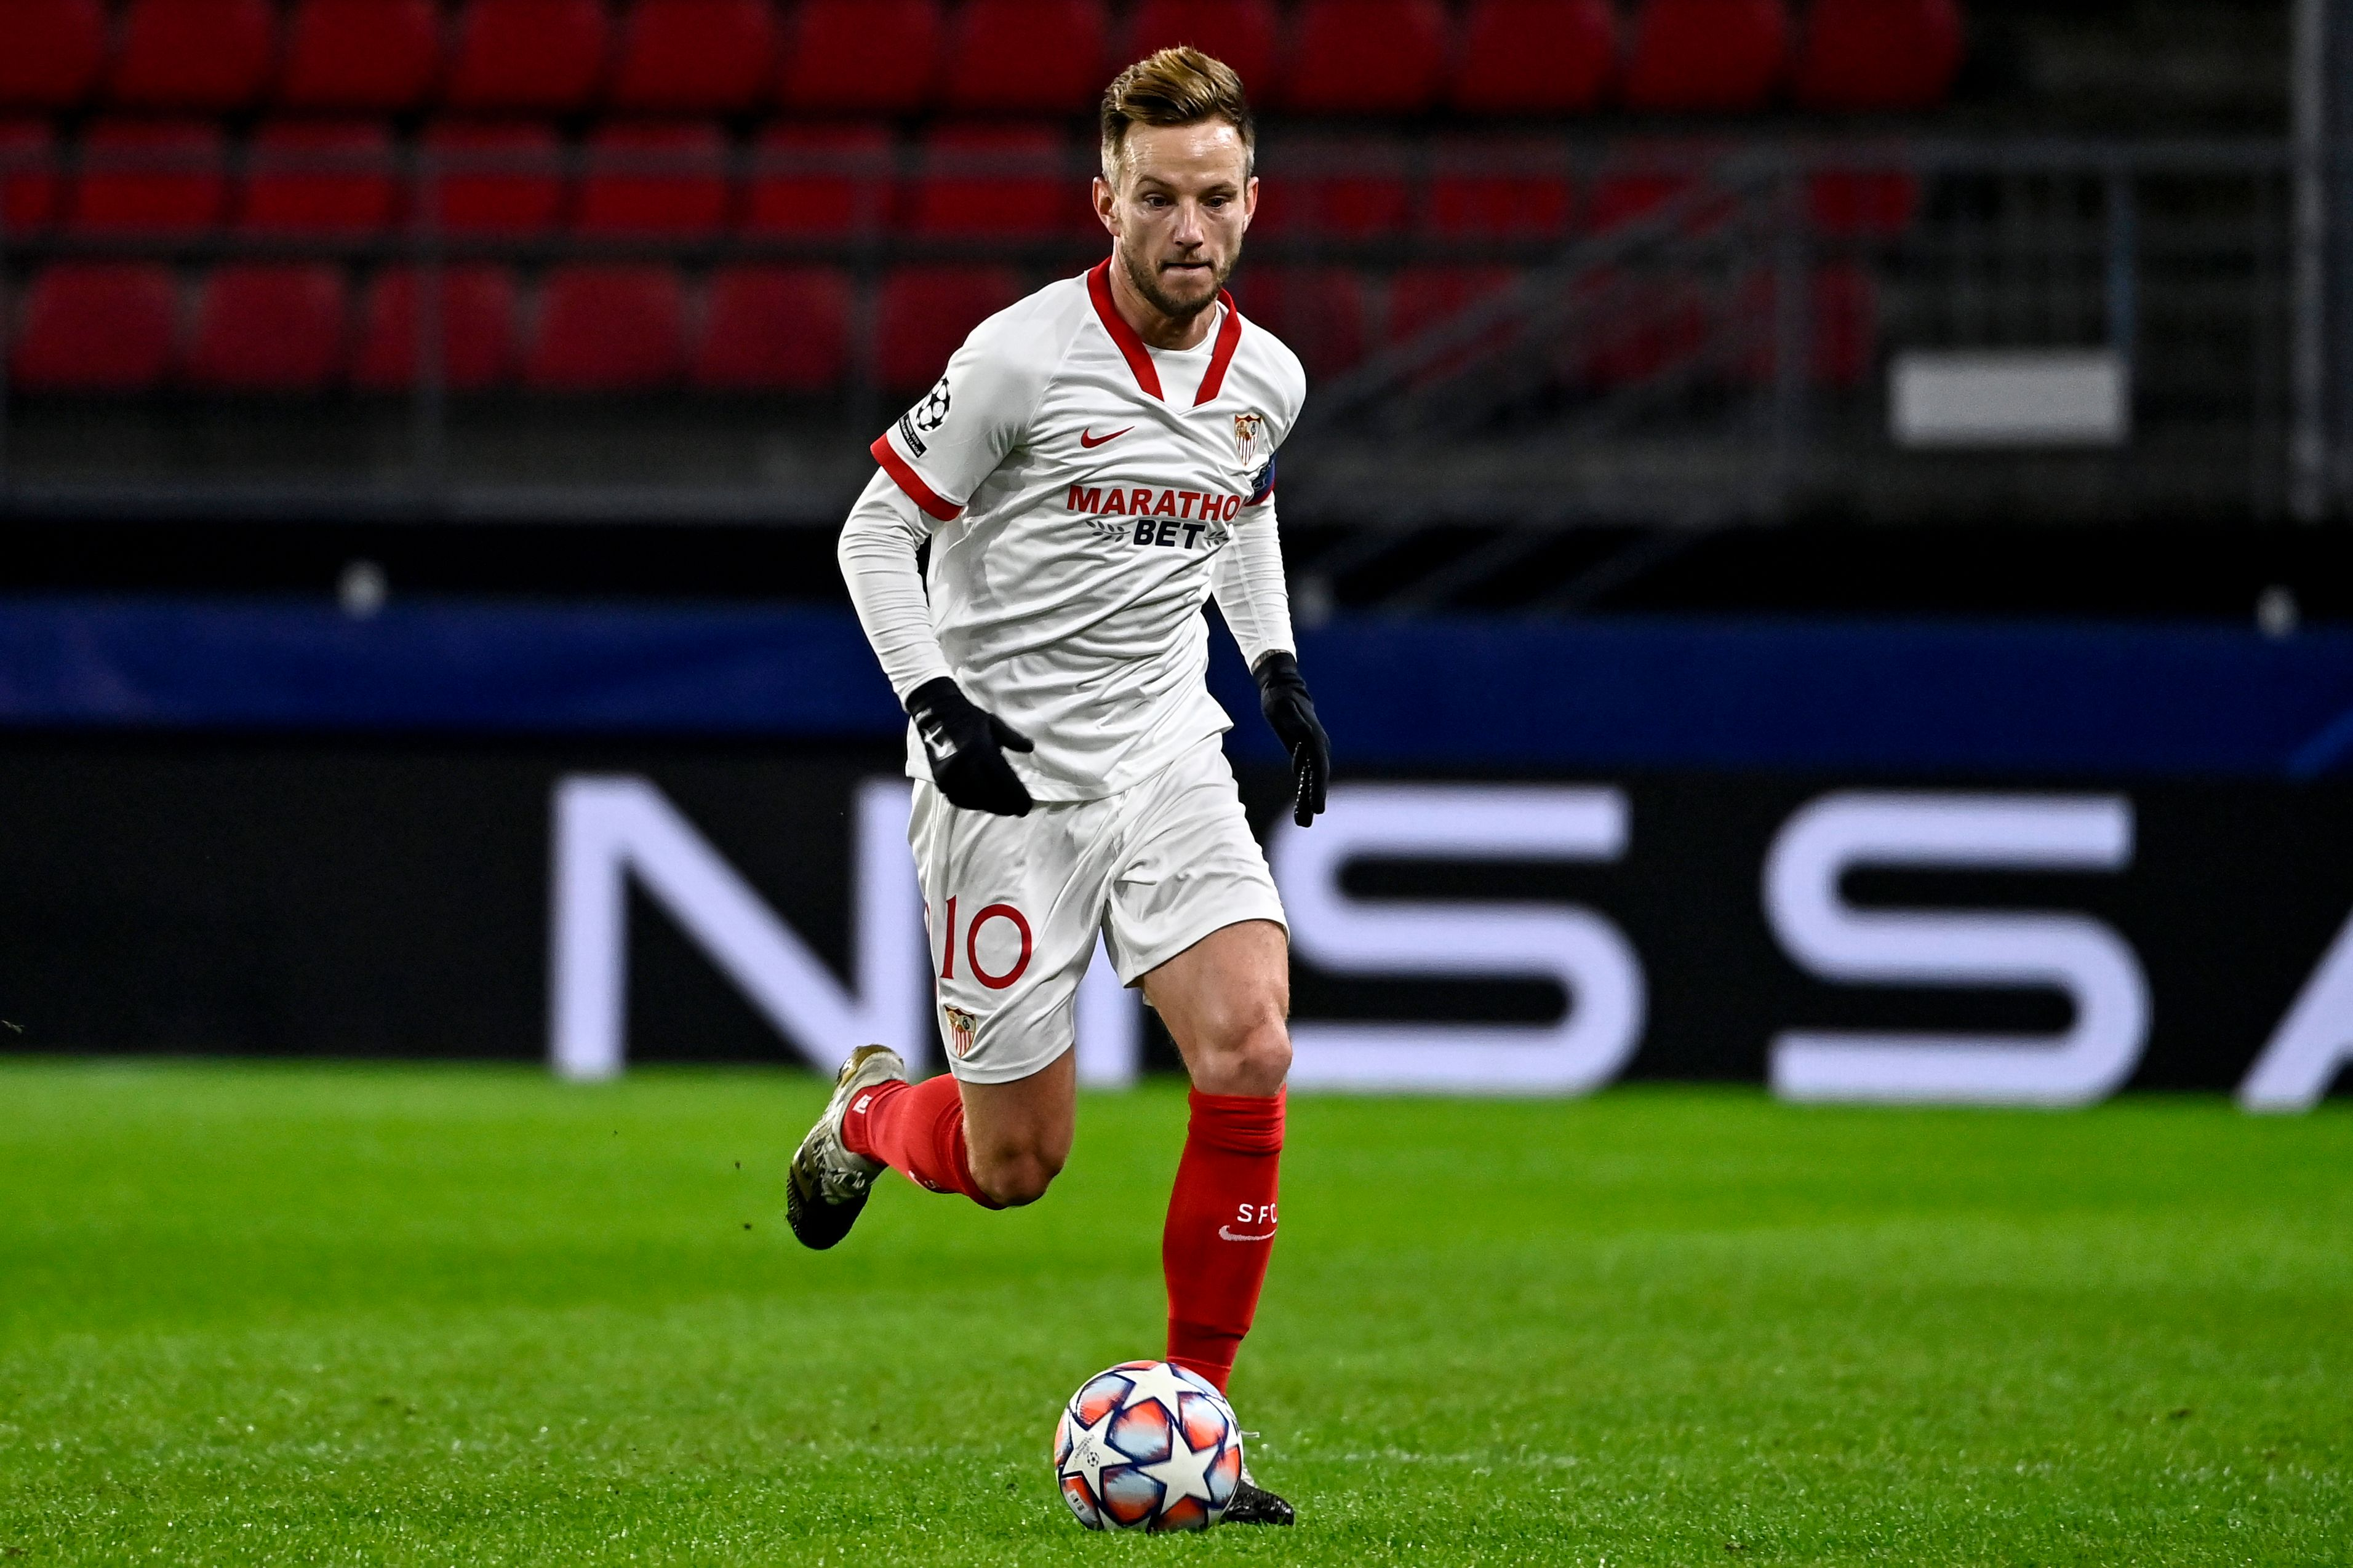 Sevilla's Croatian midfielder Ivan Rakitic runs with the ball during the UEFA Champions League Group E football match between Stade Rennais FC and Seville FC, at the Roahzon park stadium in Rennes, western France, on December 8, 2020. (Photo by DAMIEN MEYER / AFP) (Photo by DAMIEN MEYER/AFP via Getty Images)